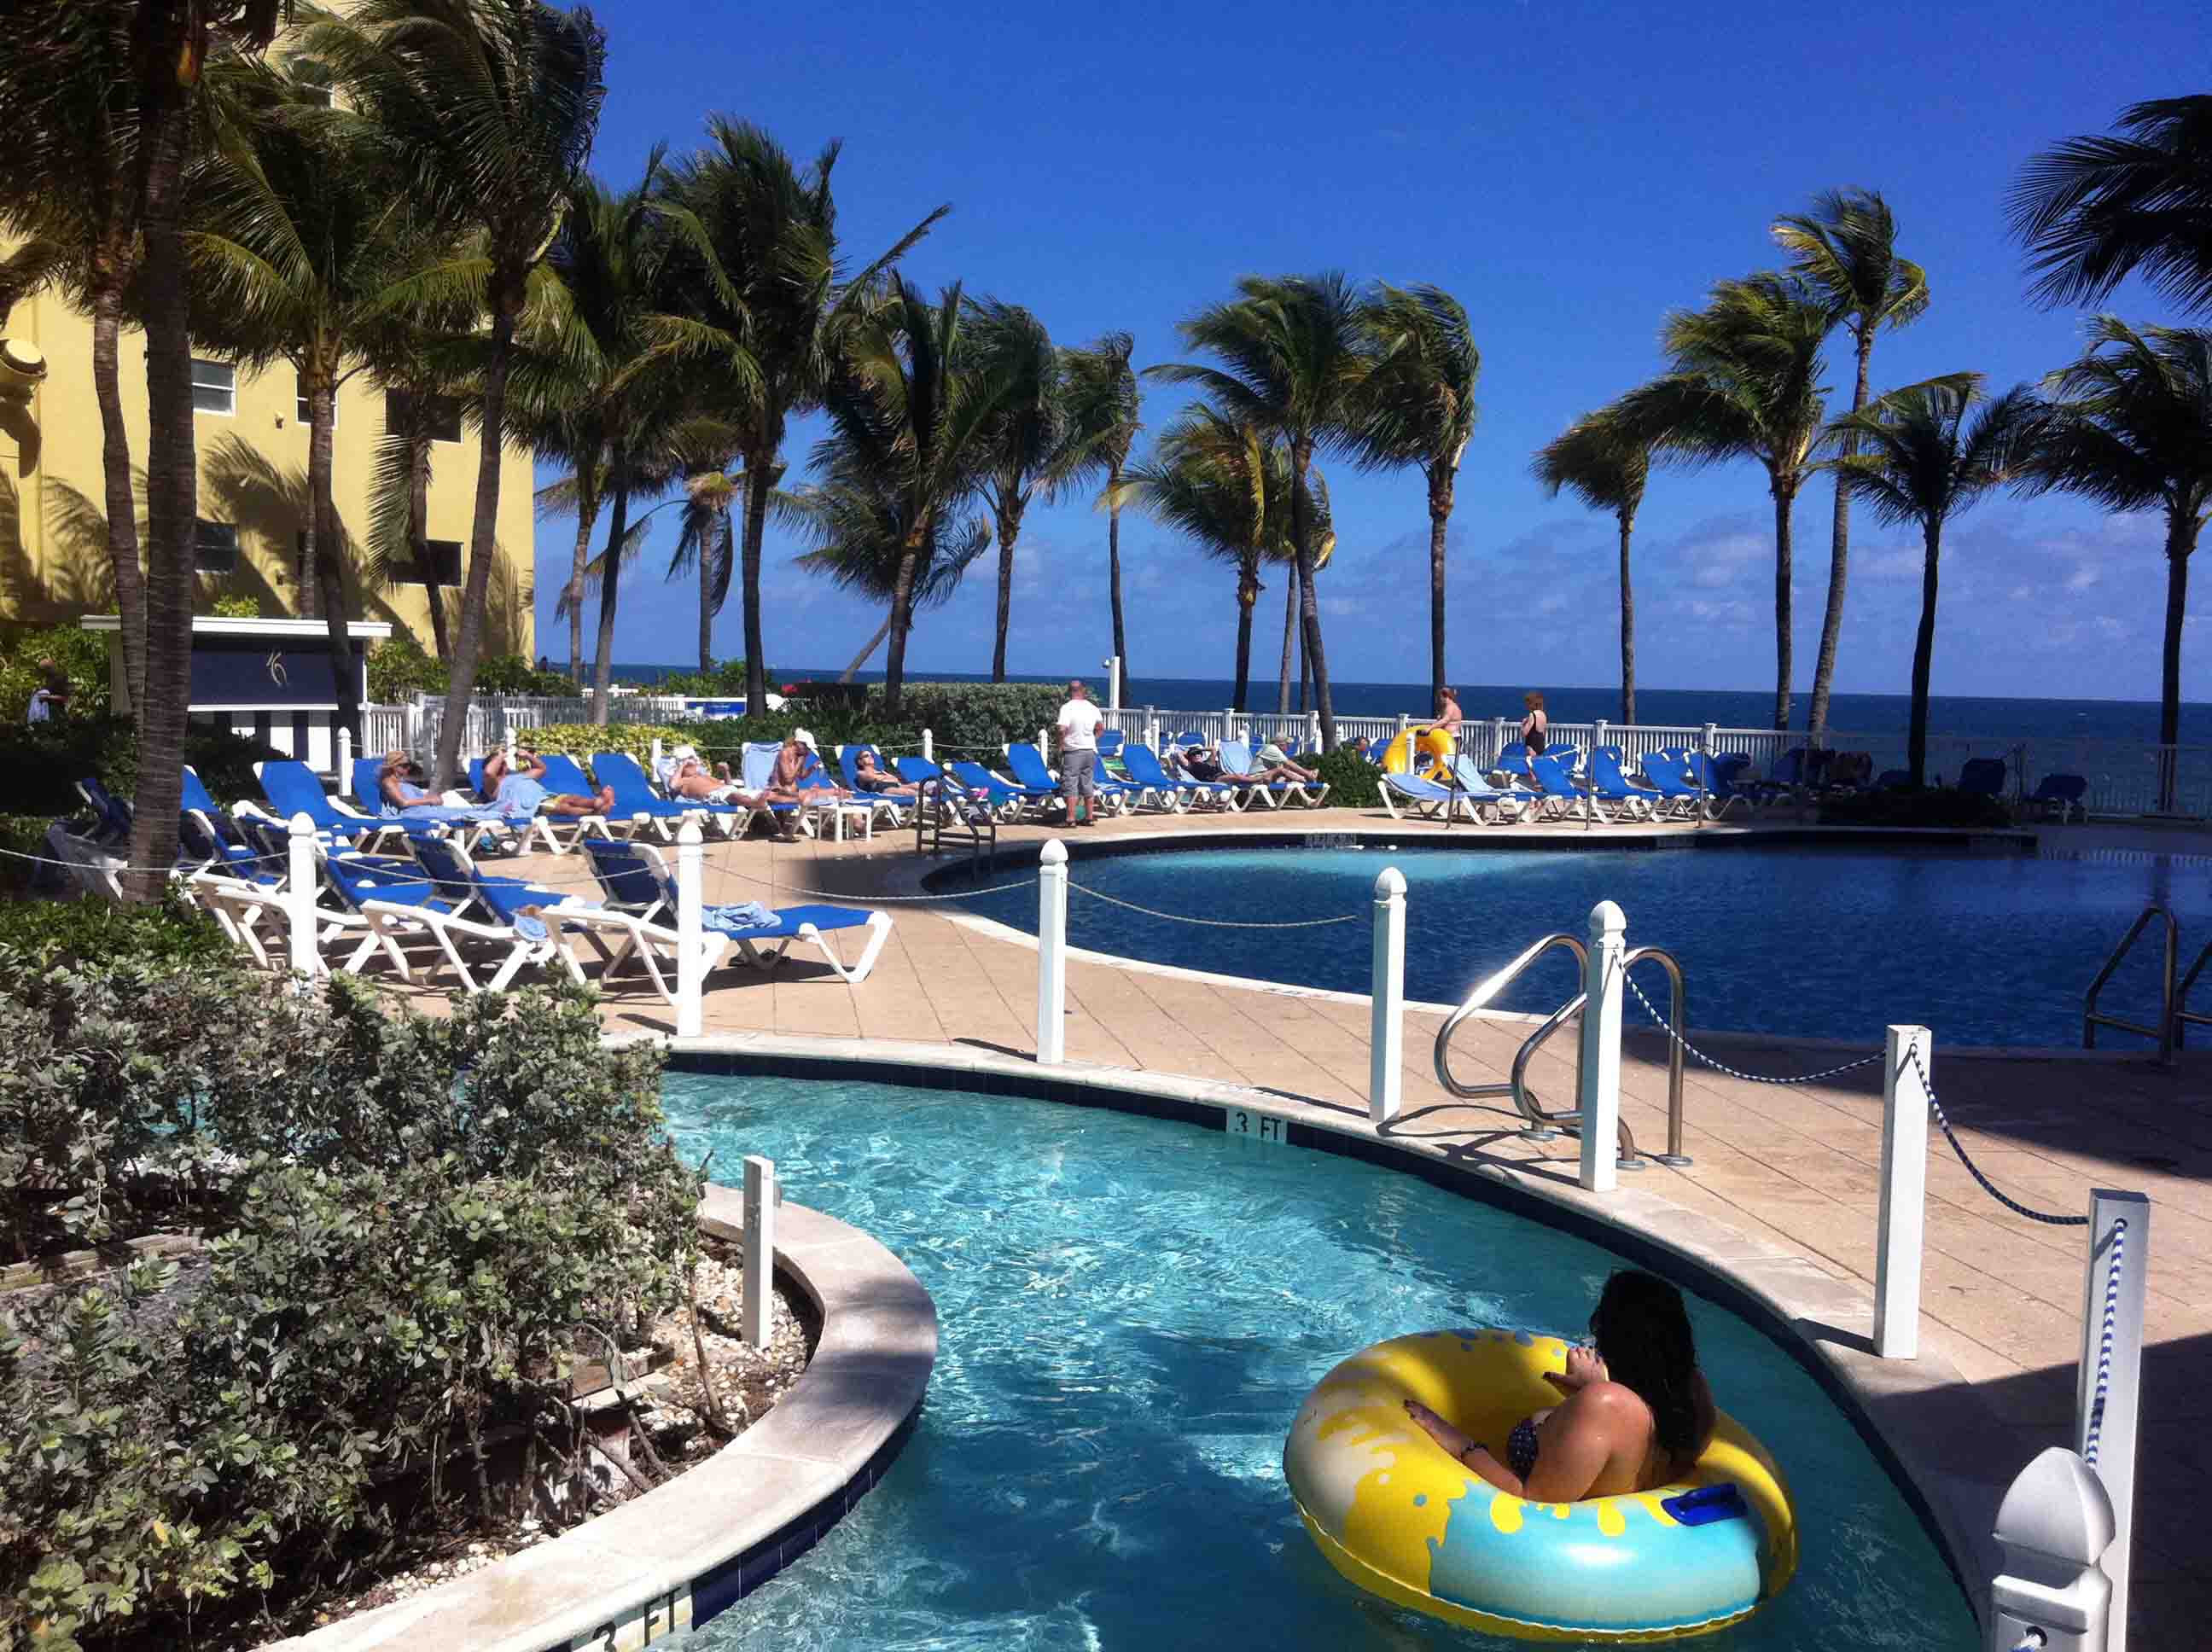 Relaxing Day at The Pelican Grand Beach Resort  Stop